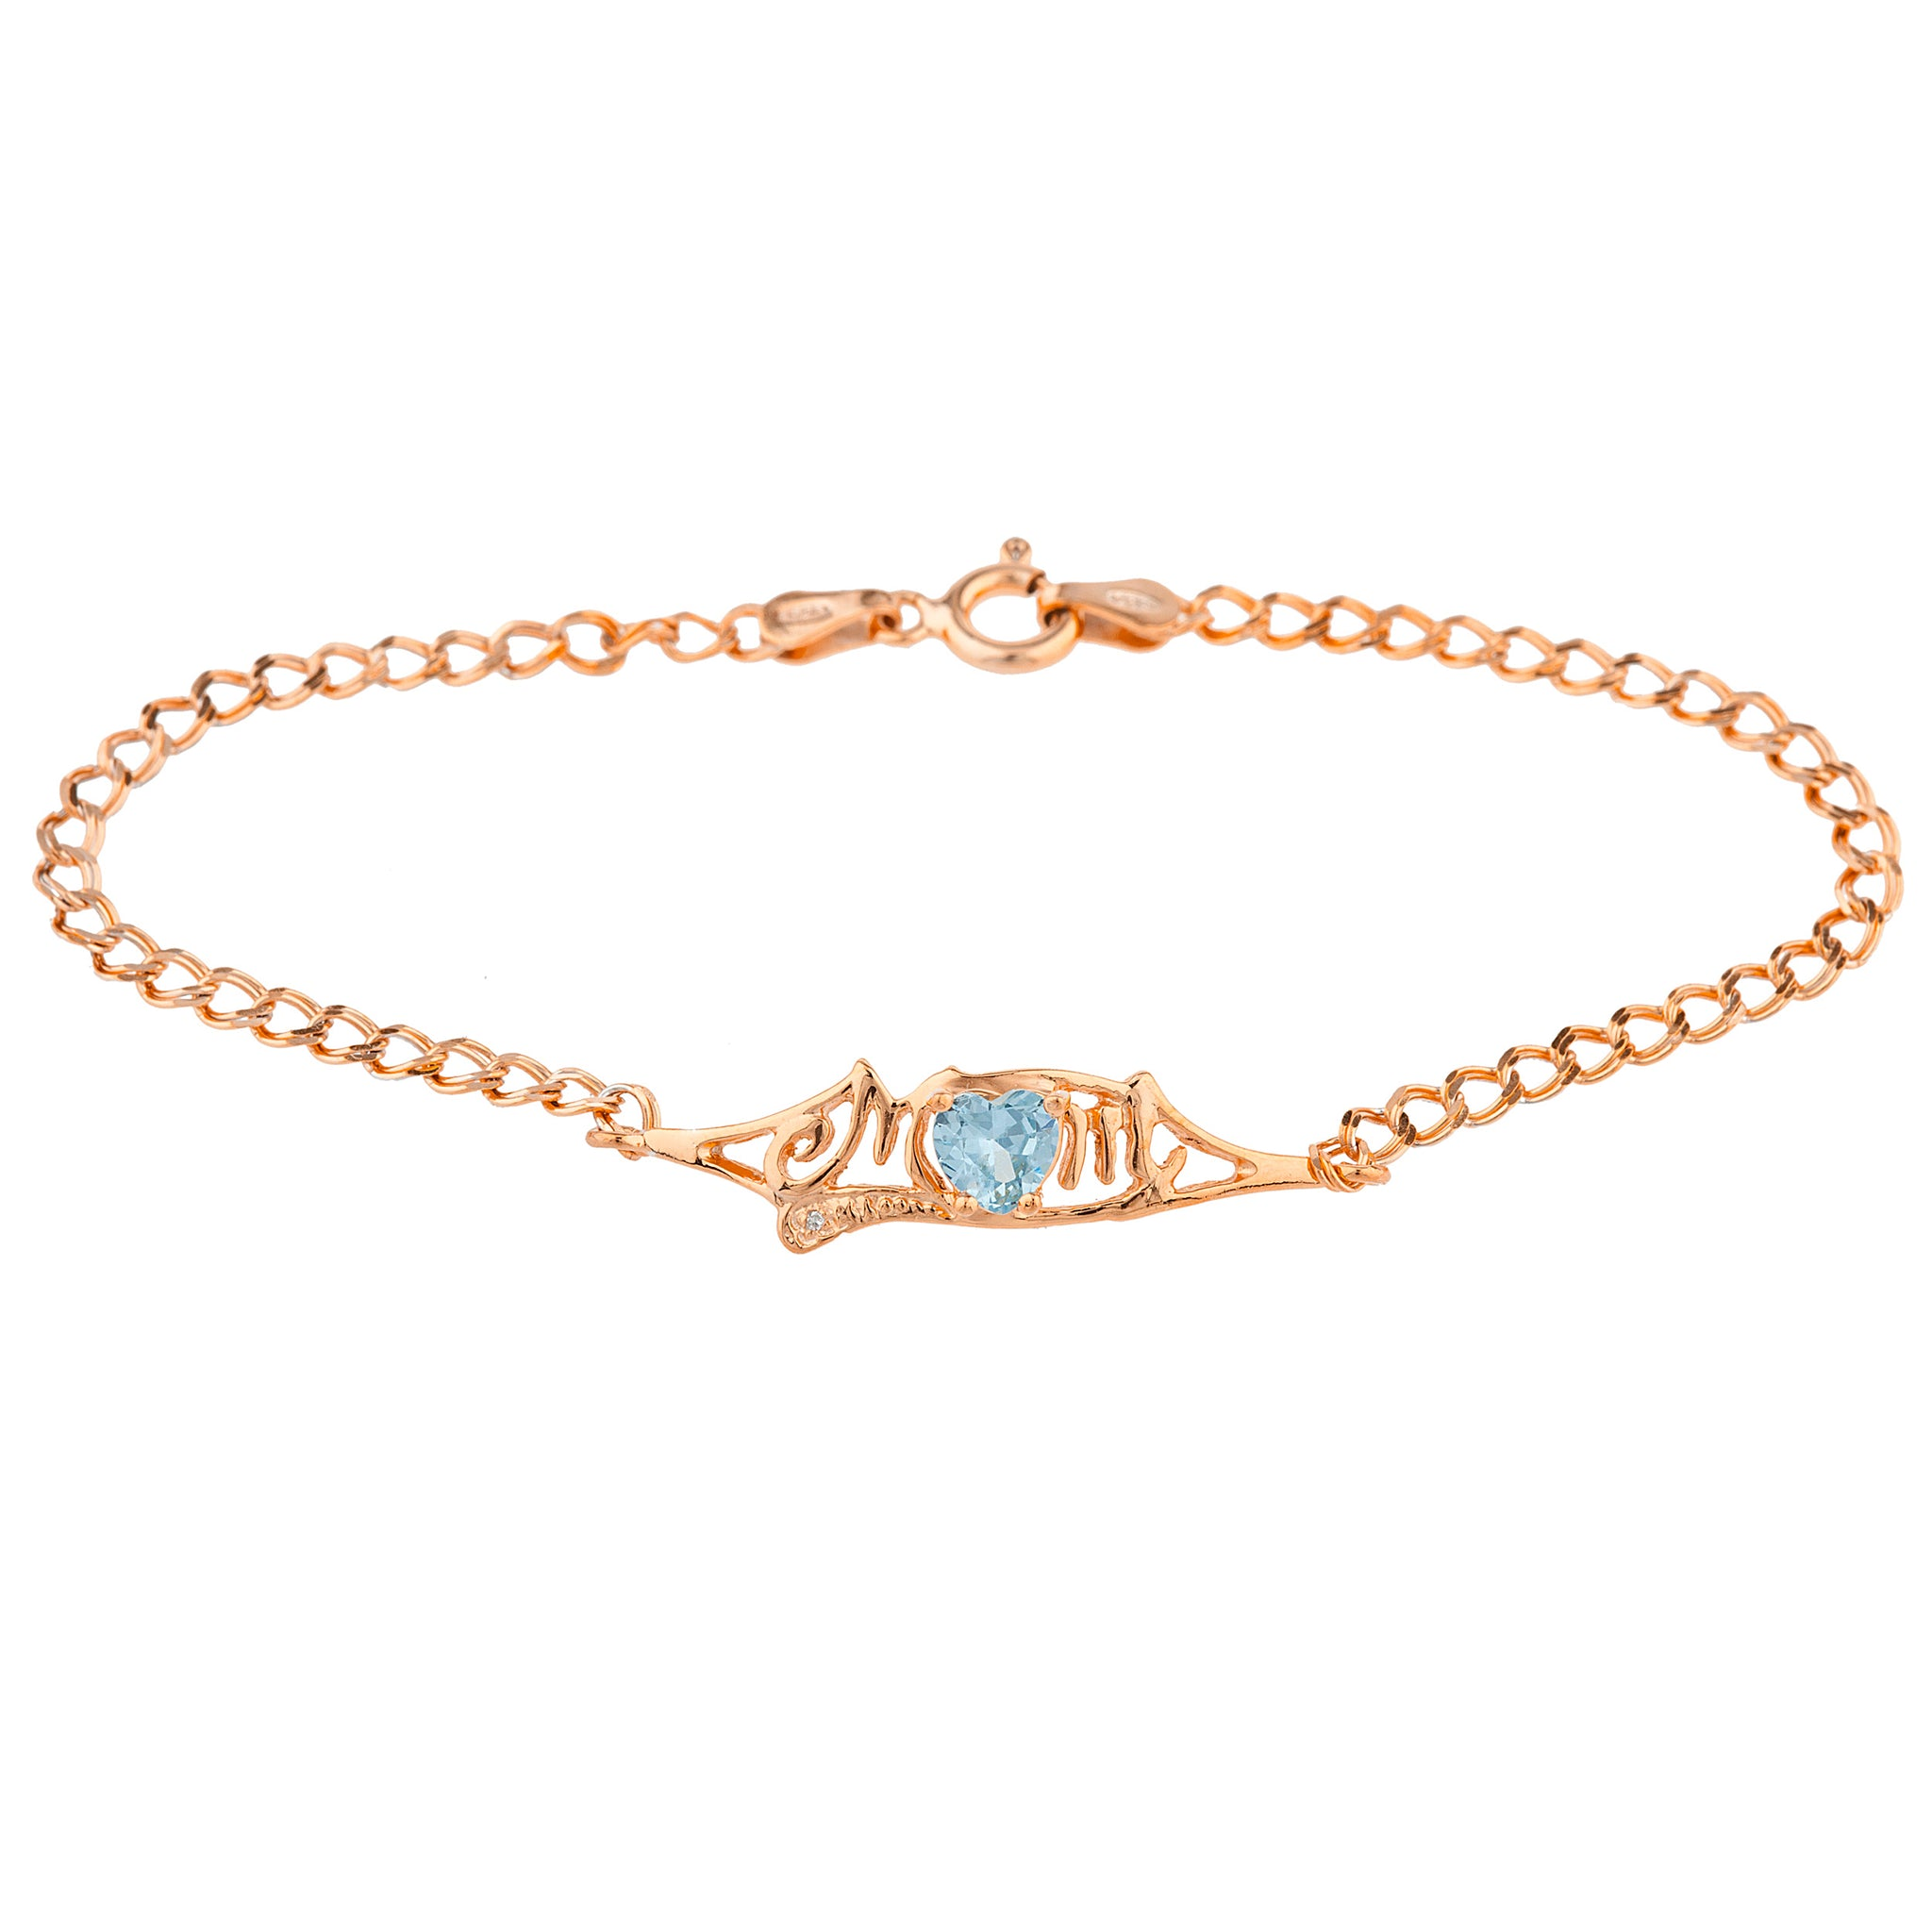 Aquamarine & Diamond Heart Mom Bracelet 14Kt Rose Gold Plated Over .925 Sterling Silver